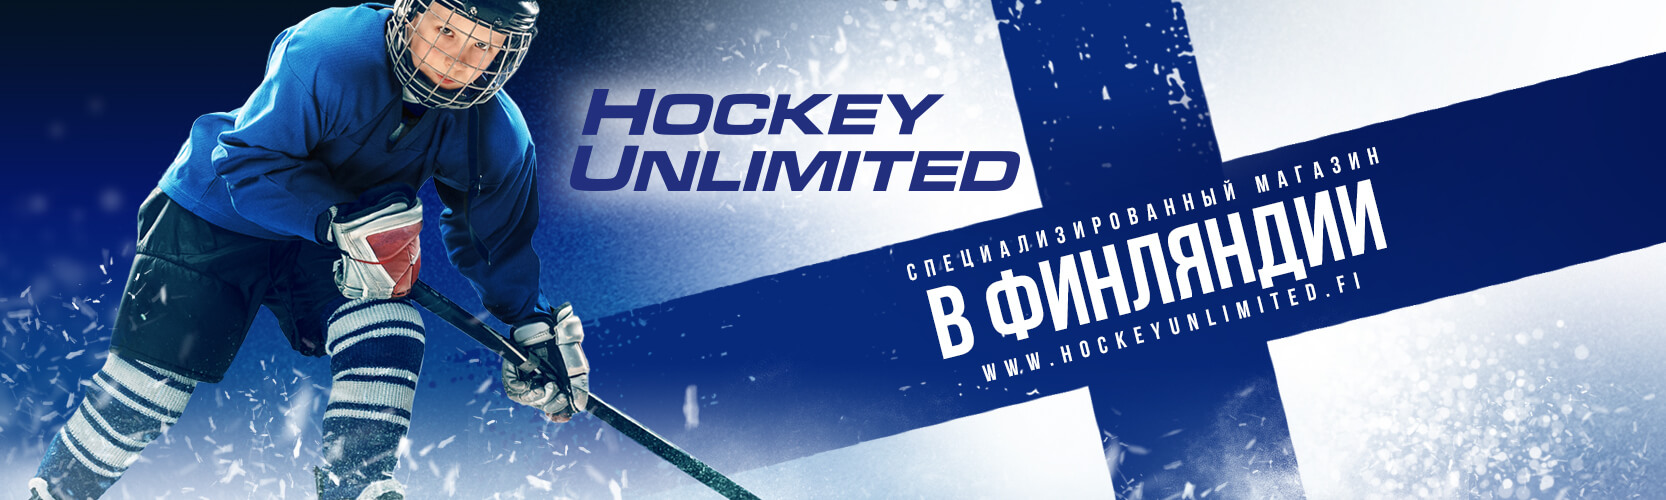 Hockeyunlimited